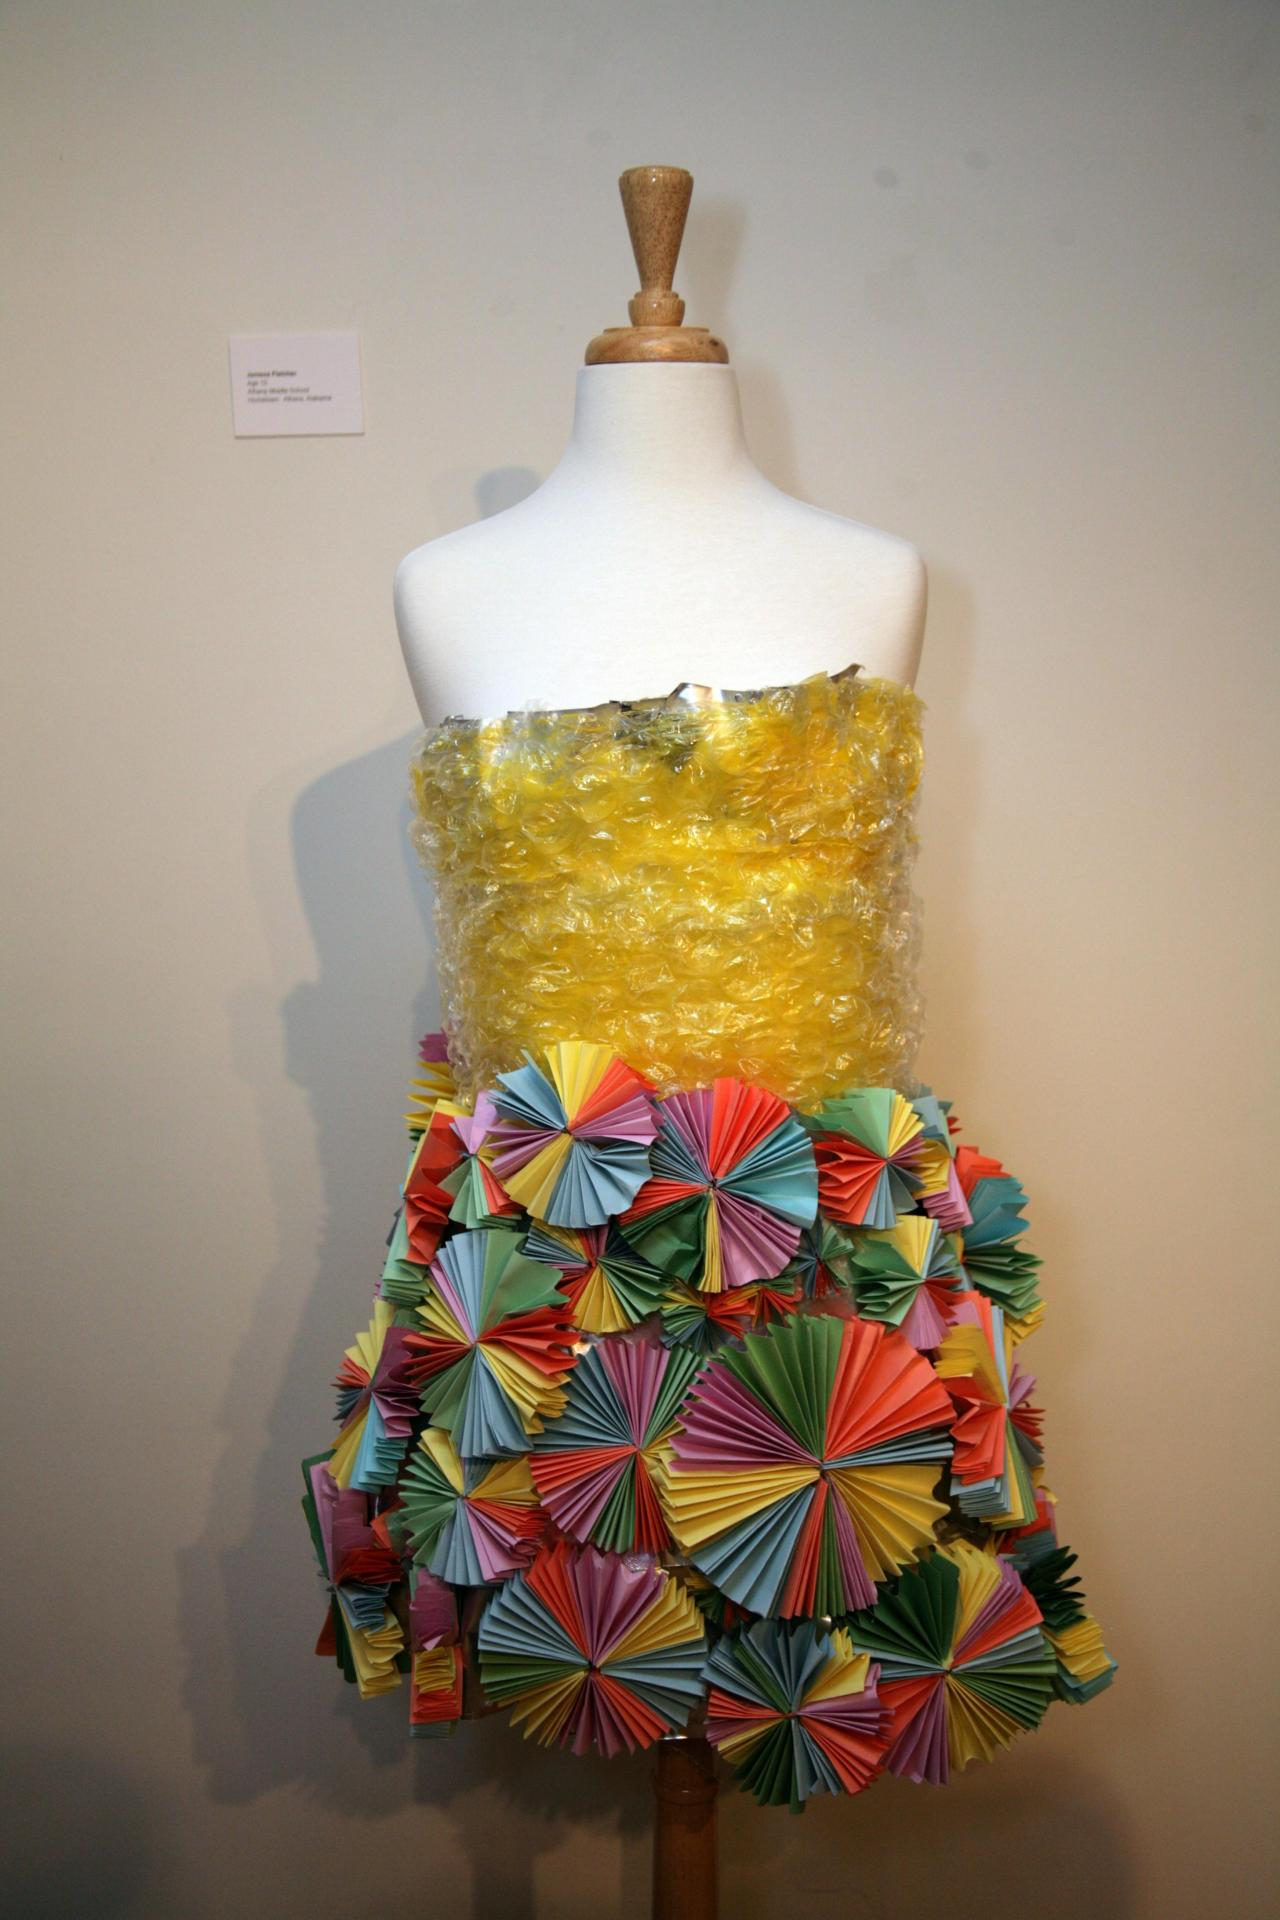 Rising Design Star, Jamesa Fletcher, designed this bright art piece that the VIP would adore to wear! What can I say...I am  sucker for bright colors!